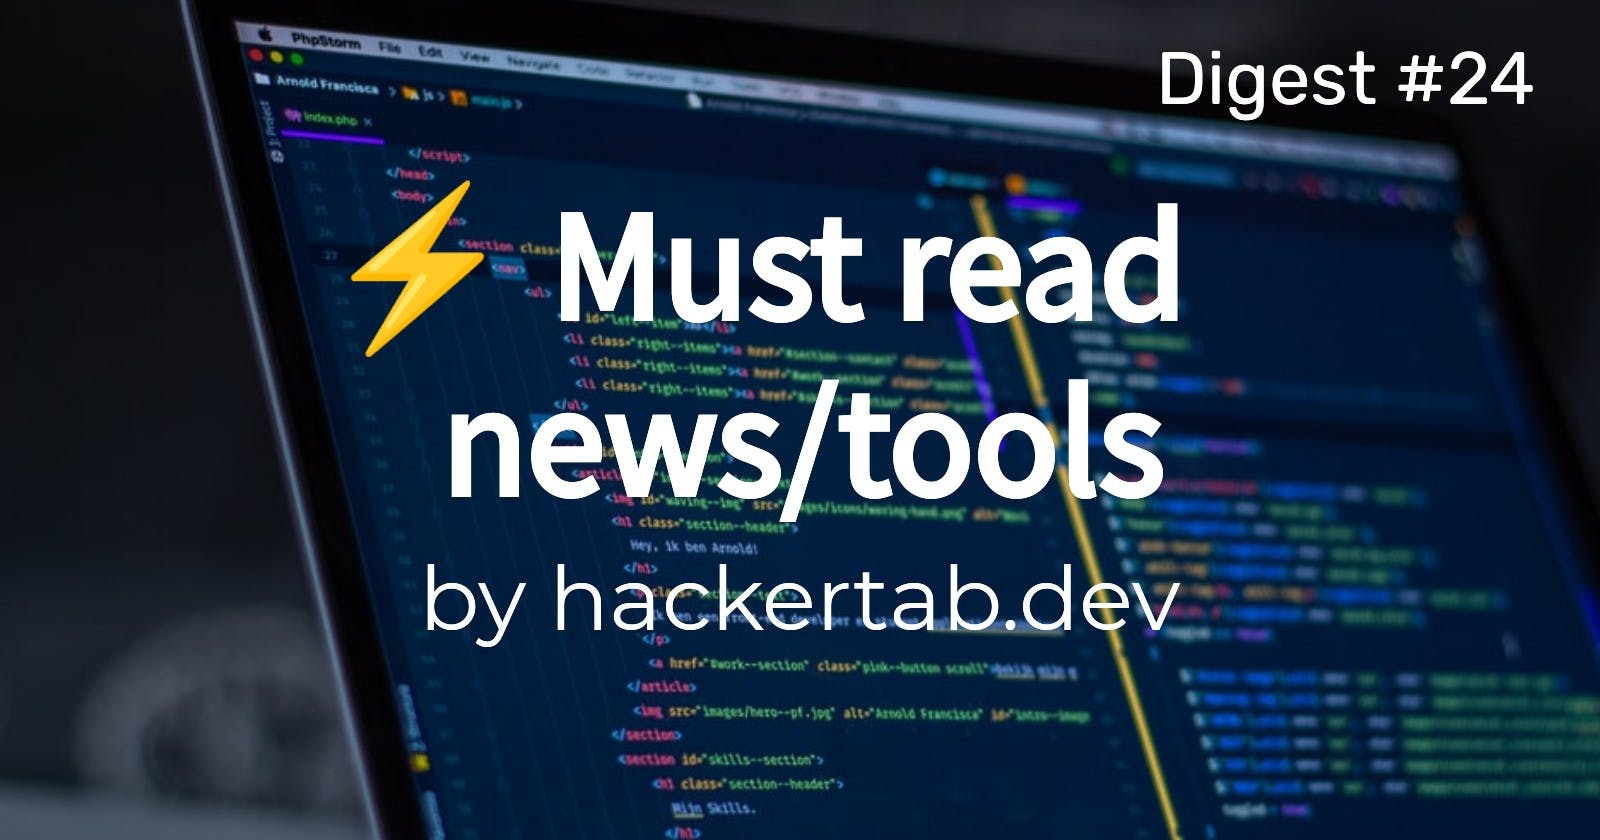 ⚡ Must read Tech news/tools of the day - Digest #24